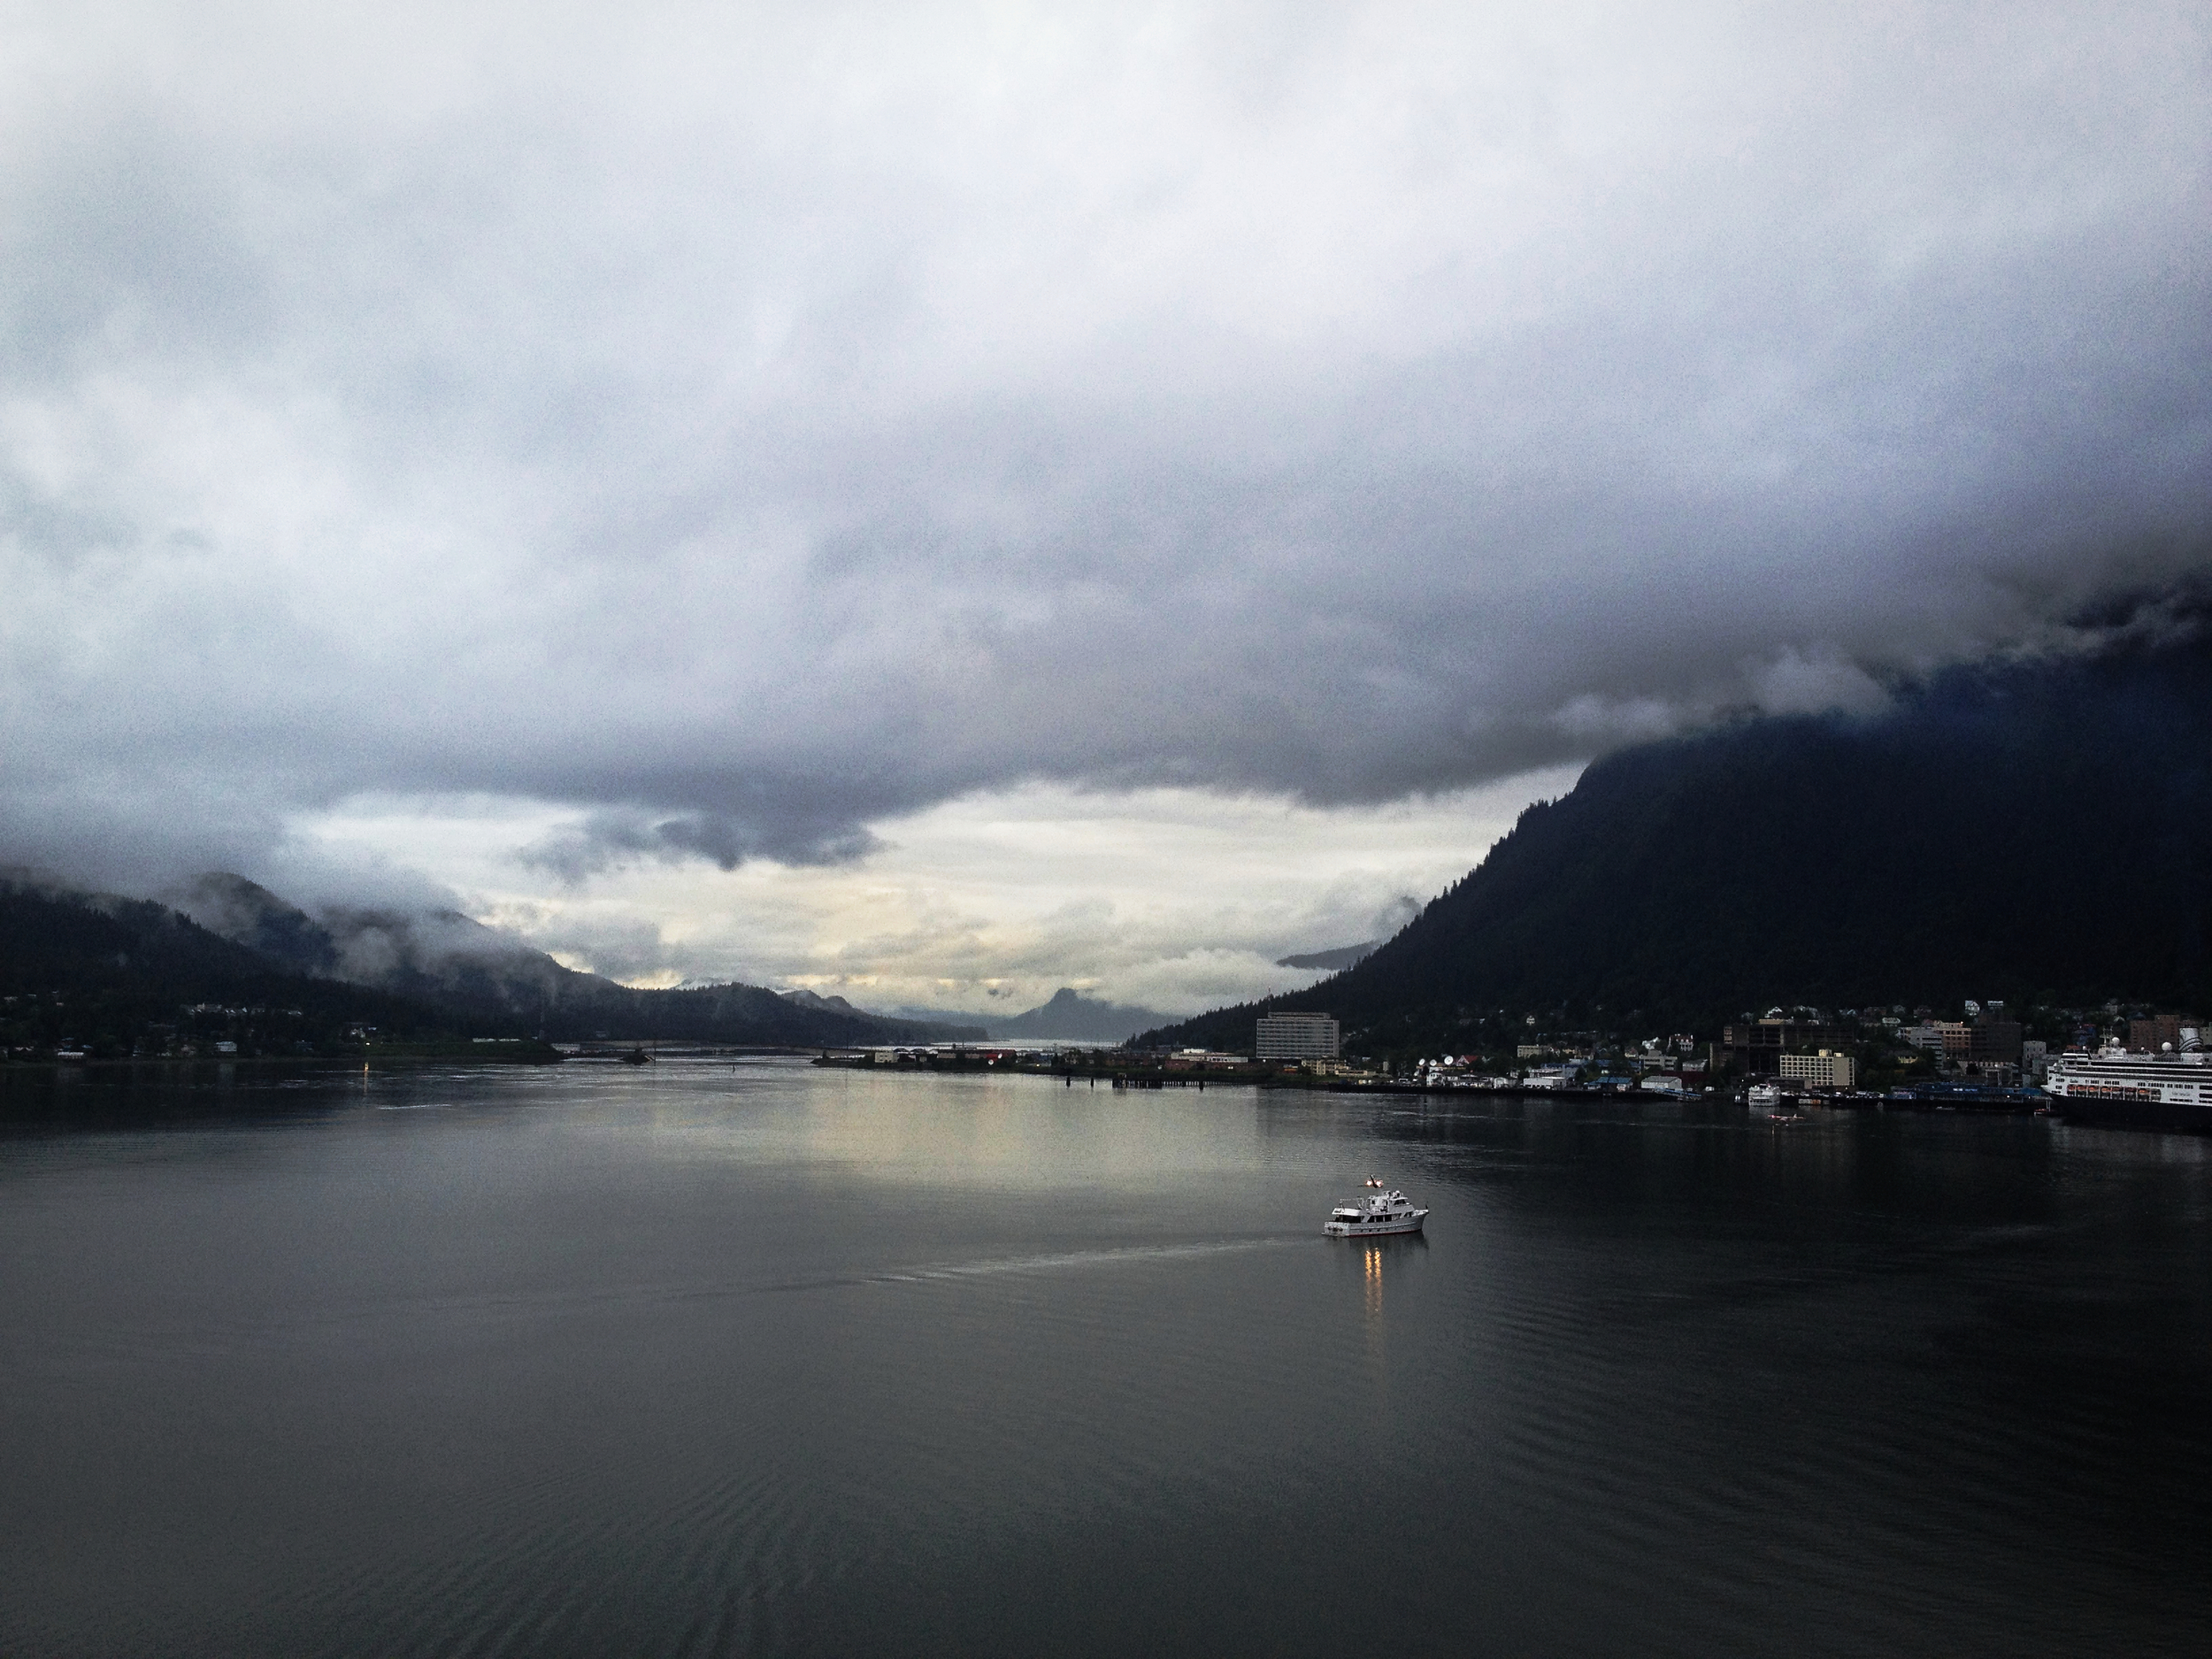 A view of part of the capital city of Juneau, Alaska. Photo: Trey Takahashi